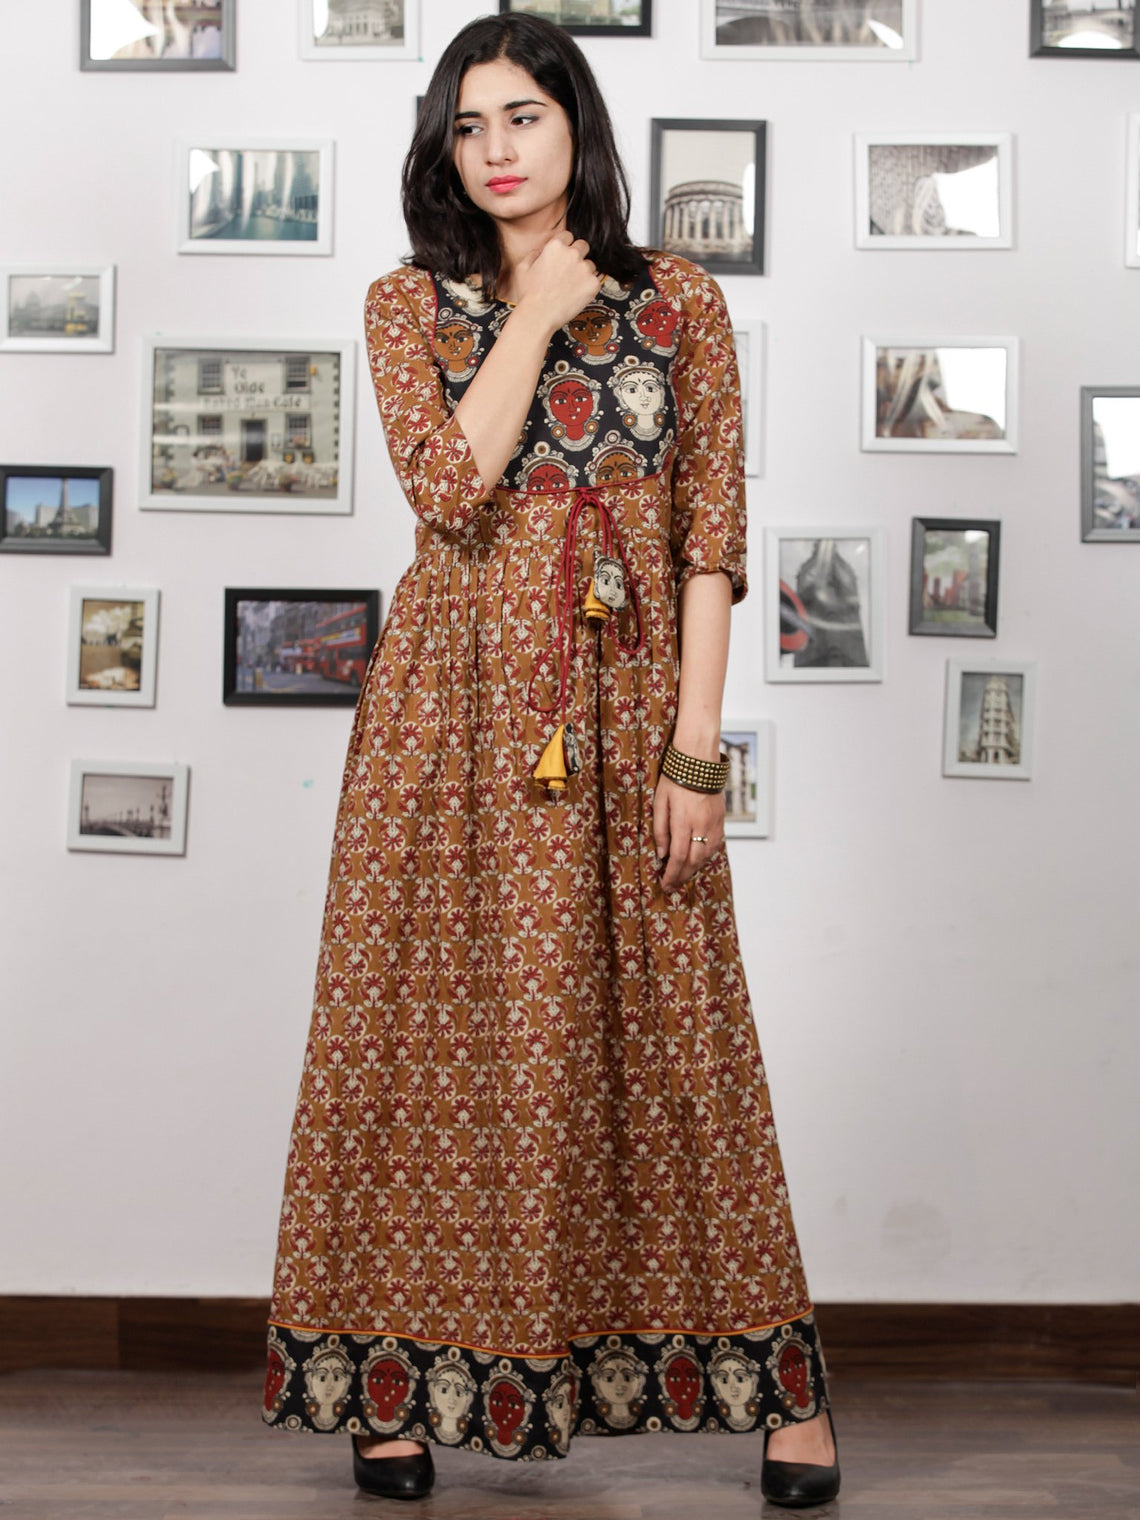 Peanut Brown Beige Maroon Black Hand Block KalamKari Printed Long Cotton Dress With Potli Tassels & side Pocket - D302F1491